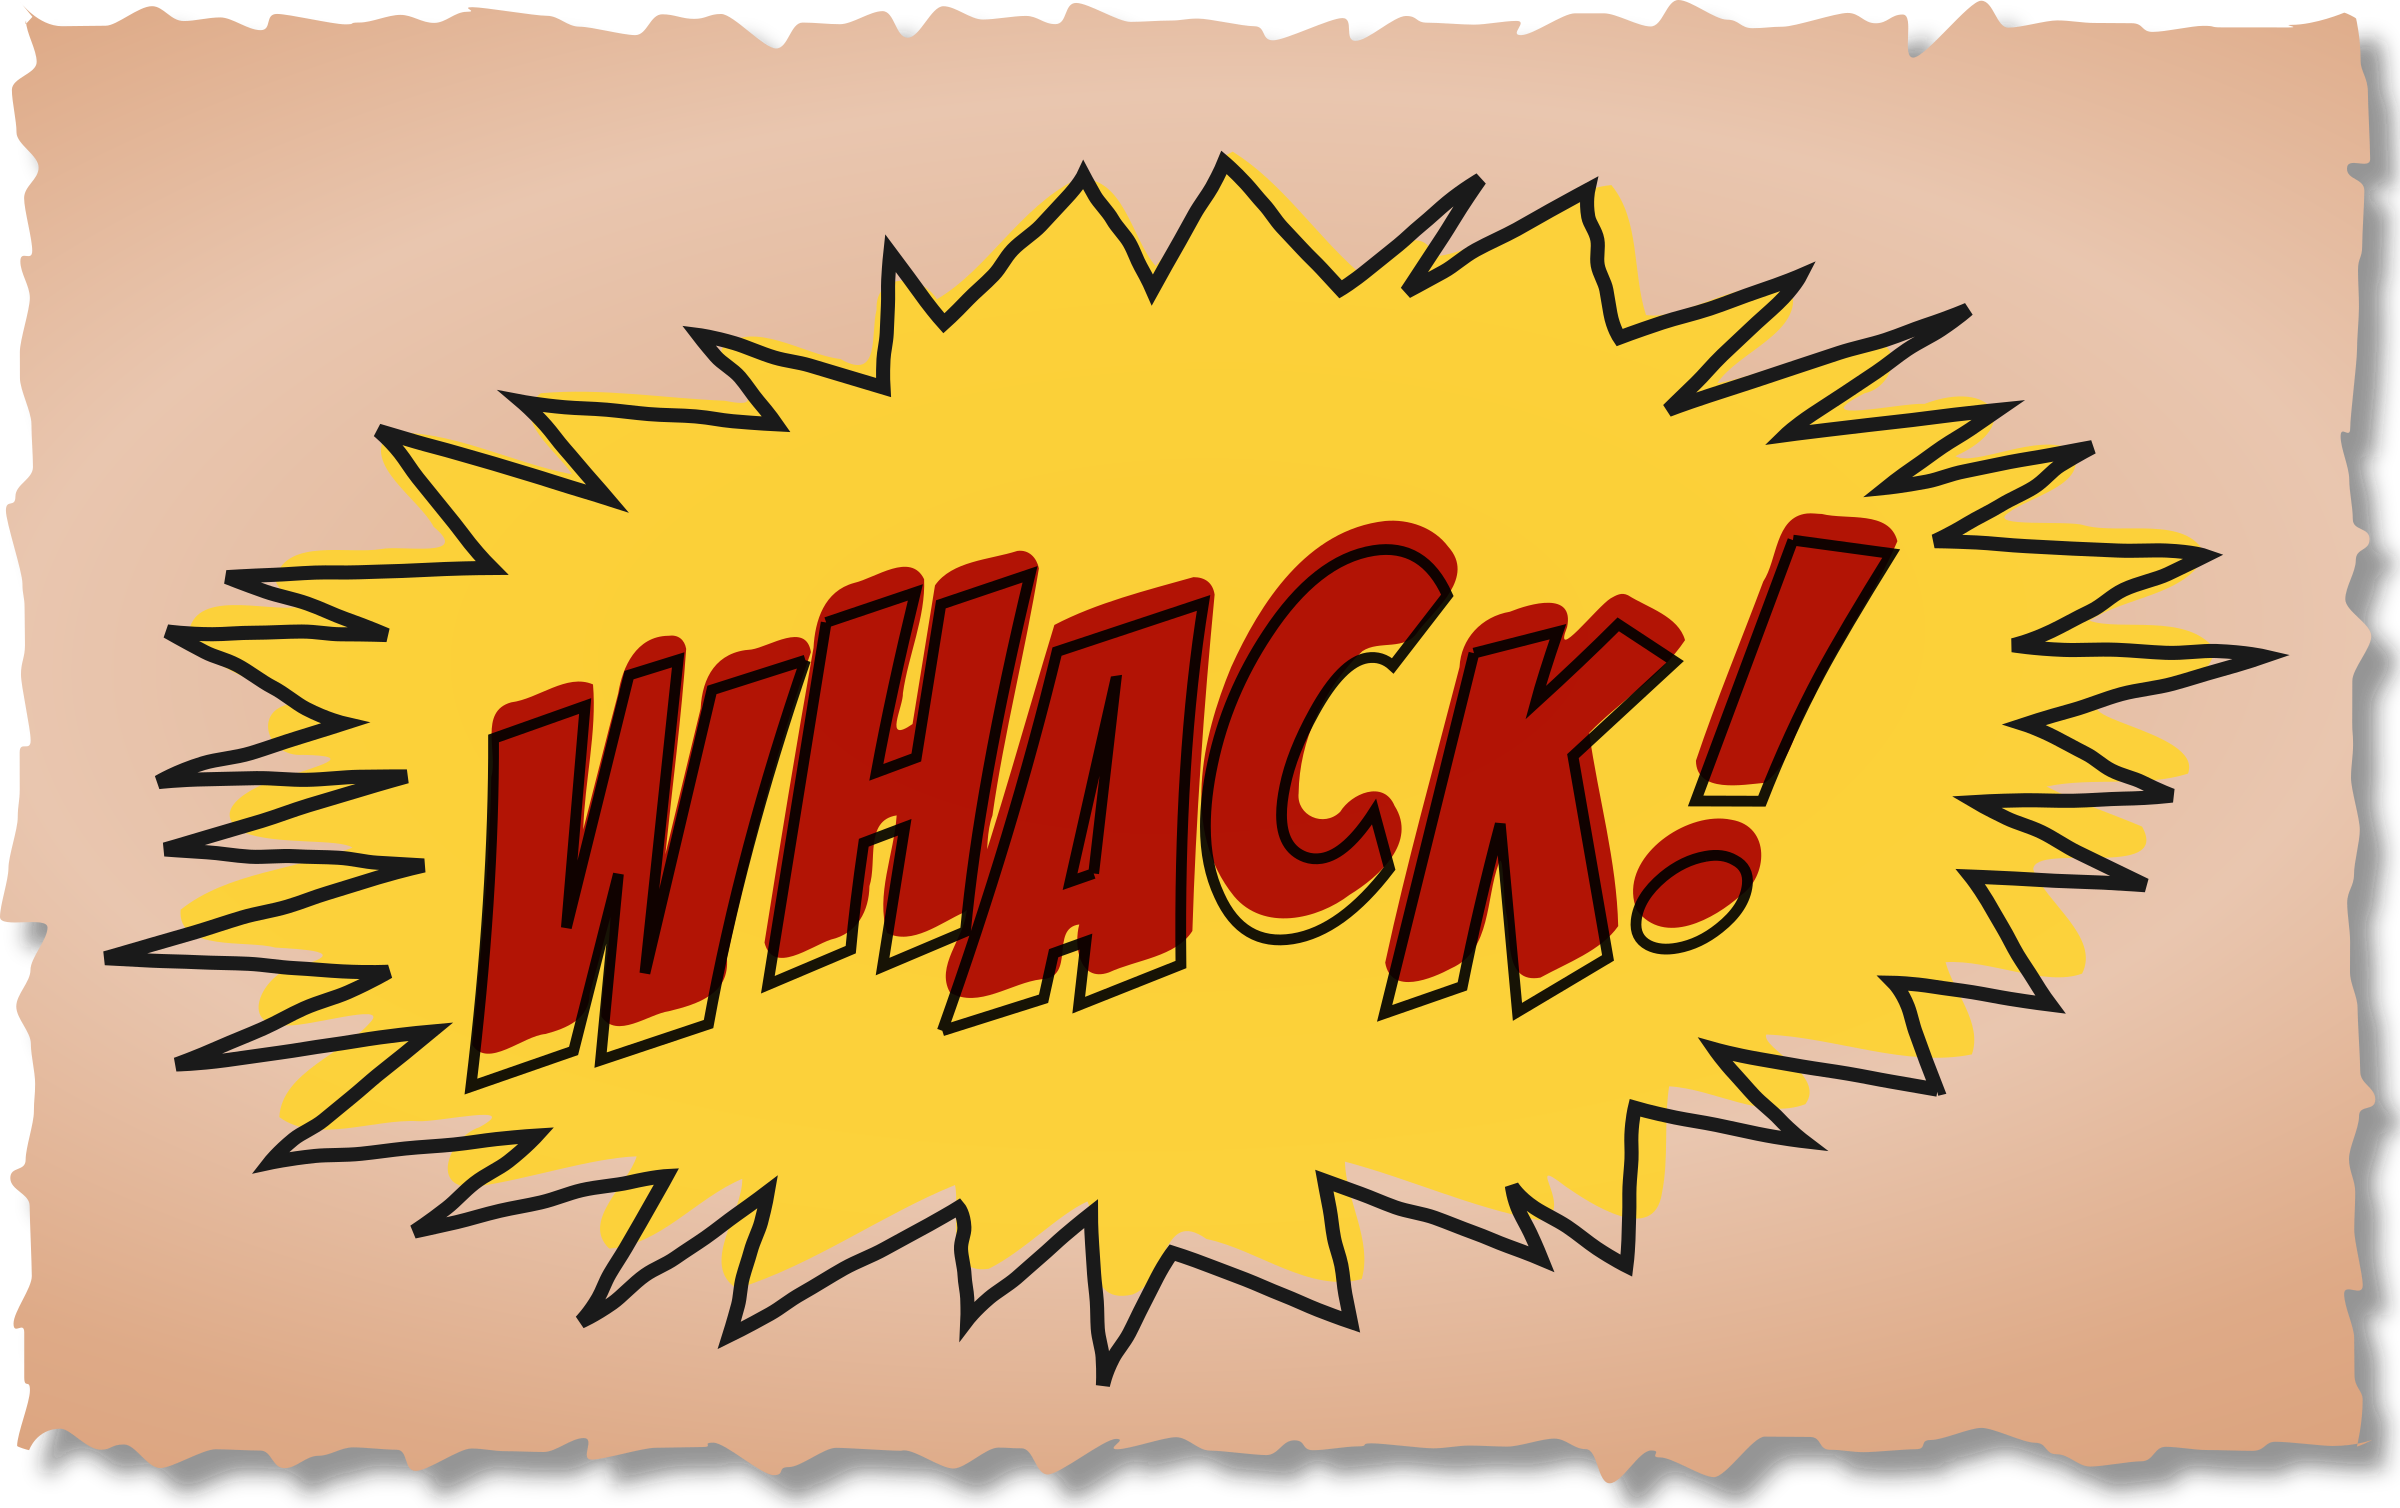 Whack comic book sound effect by studio_hades